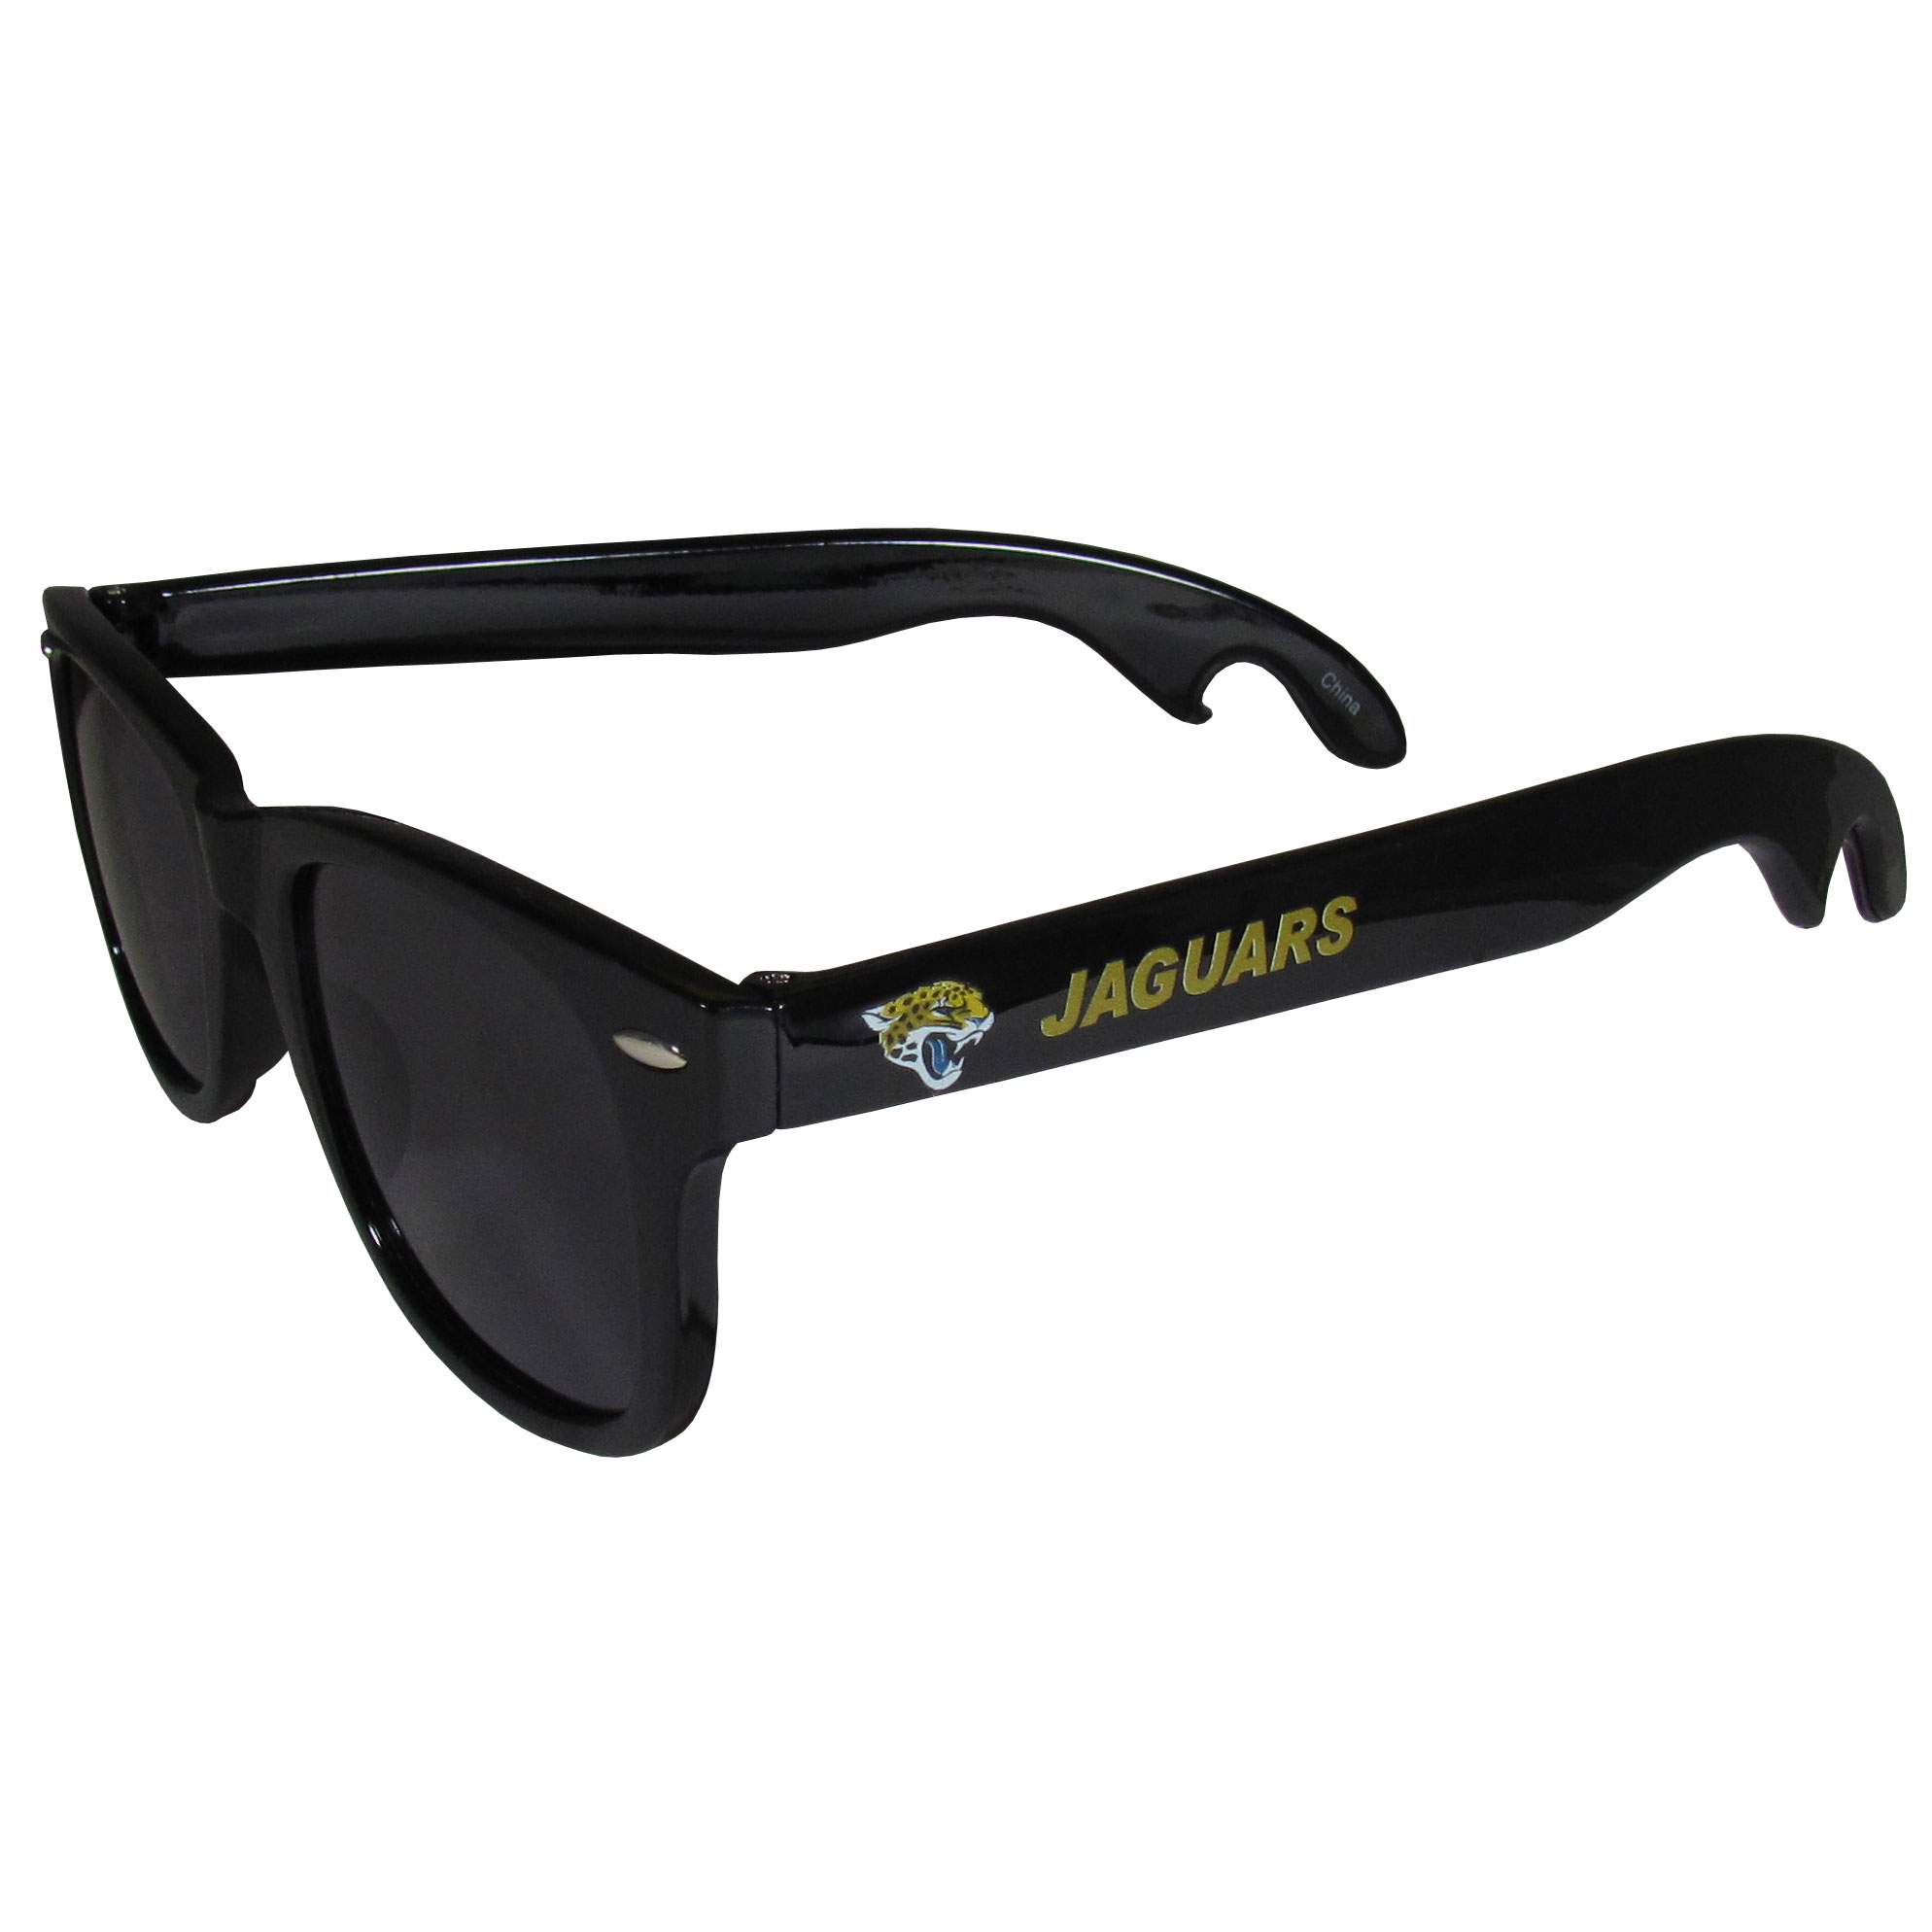 Jacksonville Jaguars Beachfarer Bottle Opener Sunglasses - Seriously, these sunglasses open bottles! Keep the party going with these amazing Jacksonville Jaguars bottle opener sunglasses. The stylish retro frames feature team designs on the arms and functional bottle openers on the end of the arms. Whether you are at the beach or having a backyard BBQ on game day, these shades will keep your eyes protected with 100% UVA/UVB protection and keep you hydrated with the handy bottle opener arms.